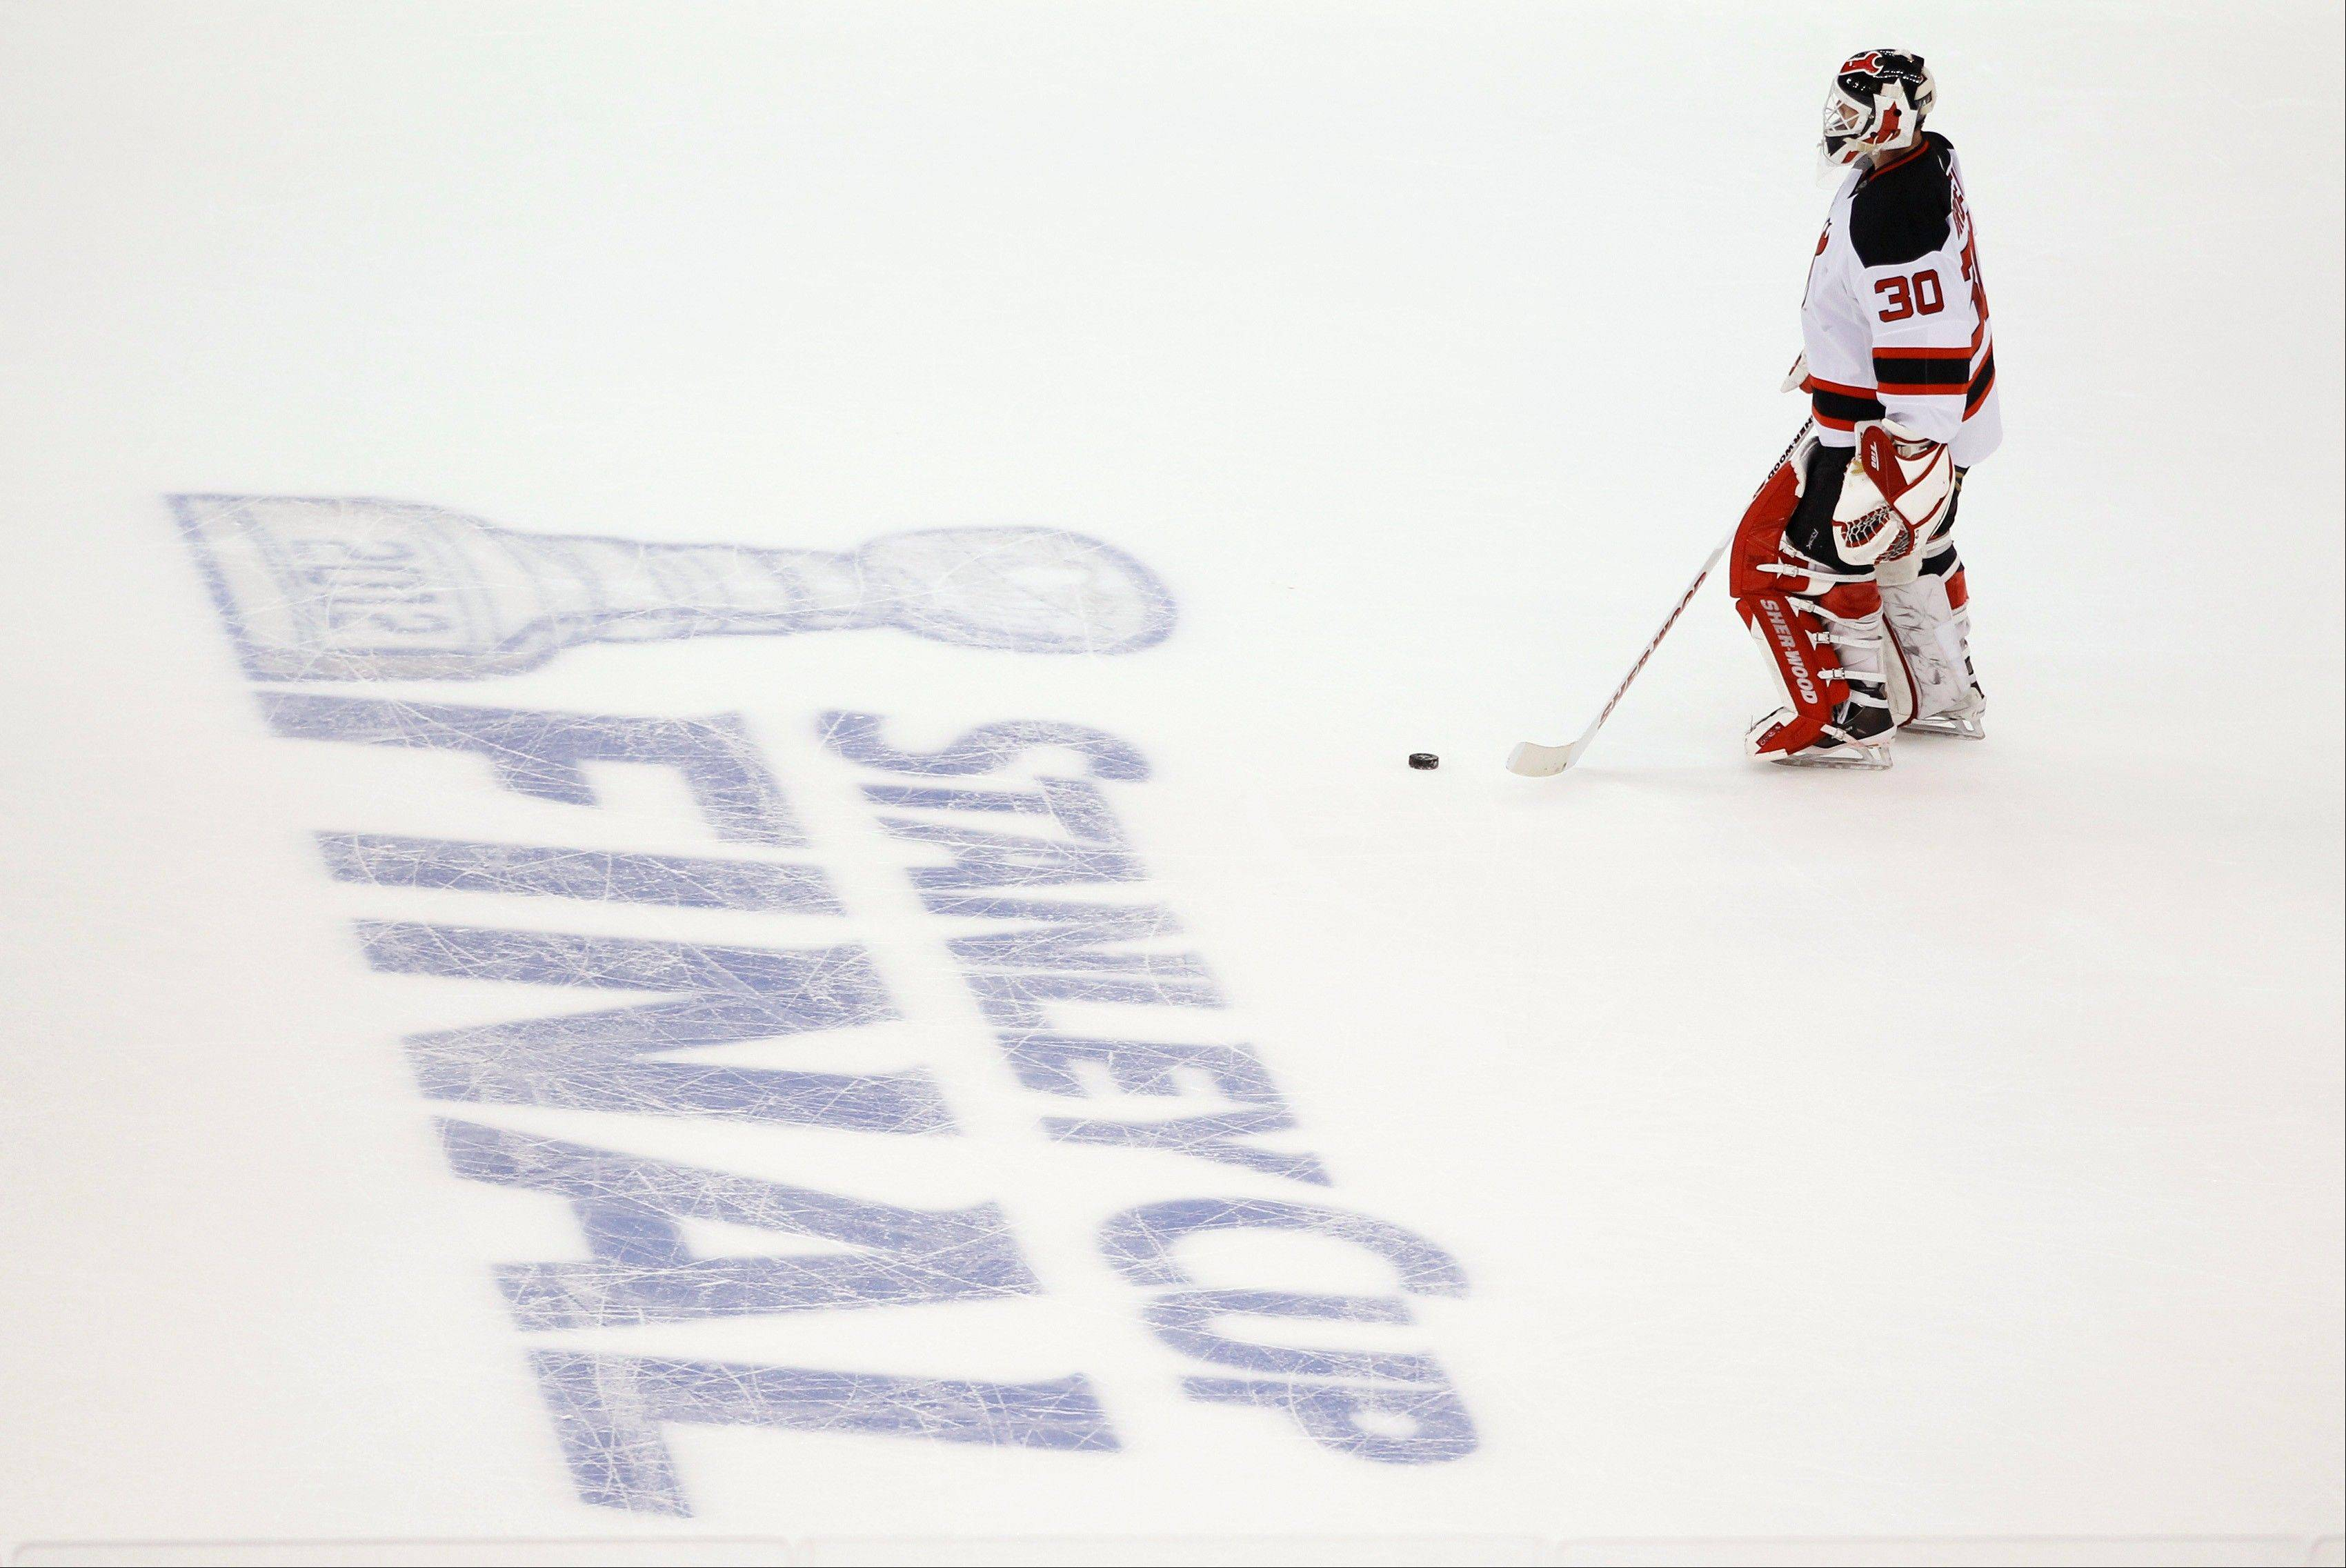 FILE - In this June 11, 2012, file photo, New Jersey Devils goalie Martin Brodeur skates towards center ice during a timeout in the second period against the Los Angeles Kings during Game 6 of NHL hockey's Stanley Cup finals in Los Angeles. The NHL announced Friday, Oct. 26, 2012, that it has canceled all its games through the end of November because of the labor dispute between owners and players.